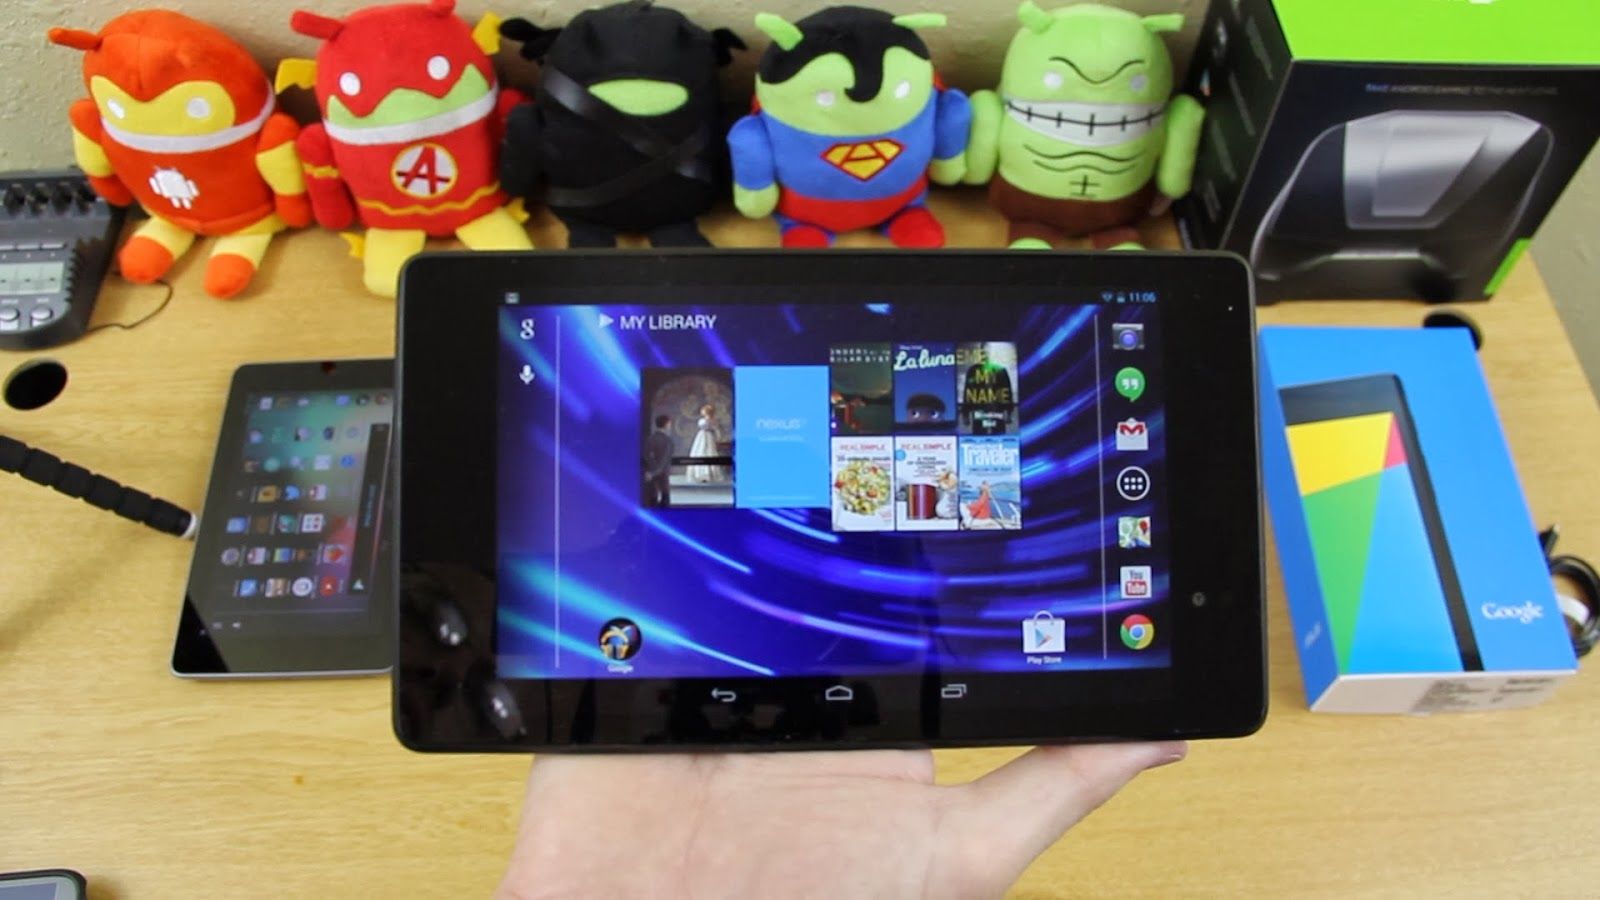 Rumor: Google torn between Asus, LG and HTC for 2014 Nexus 7 tablet